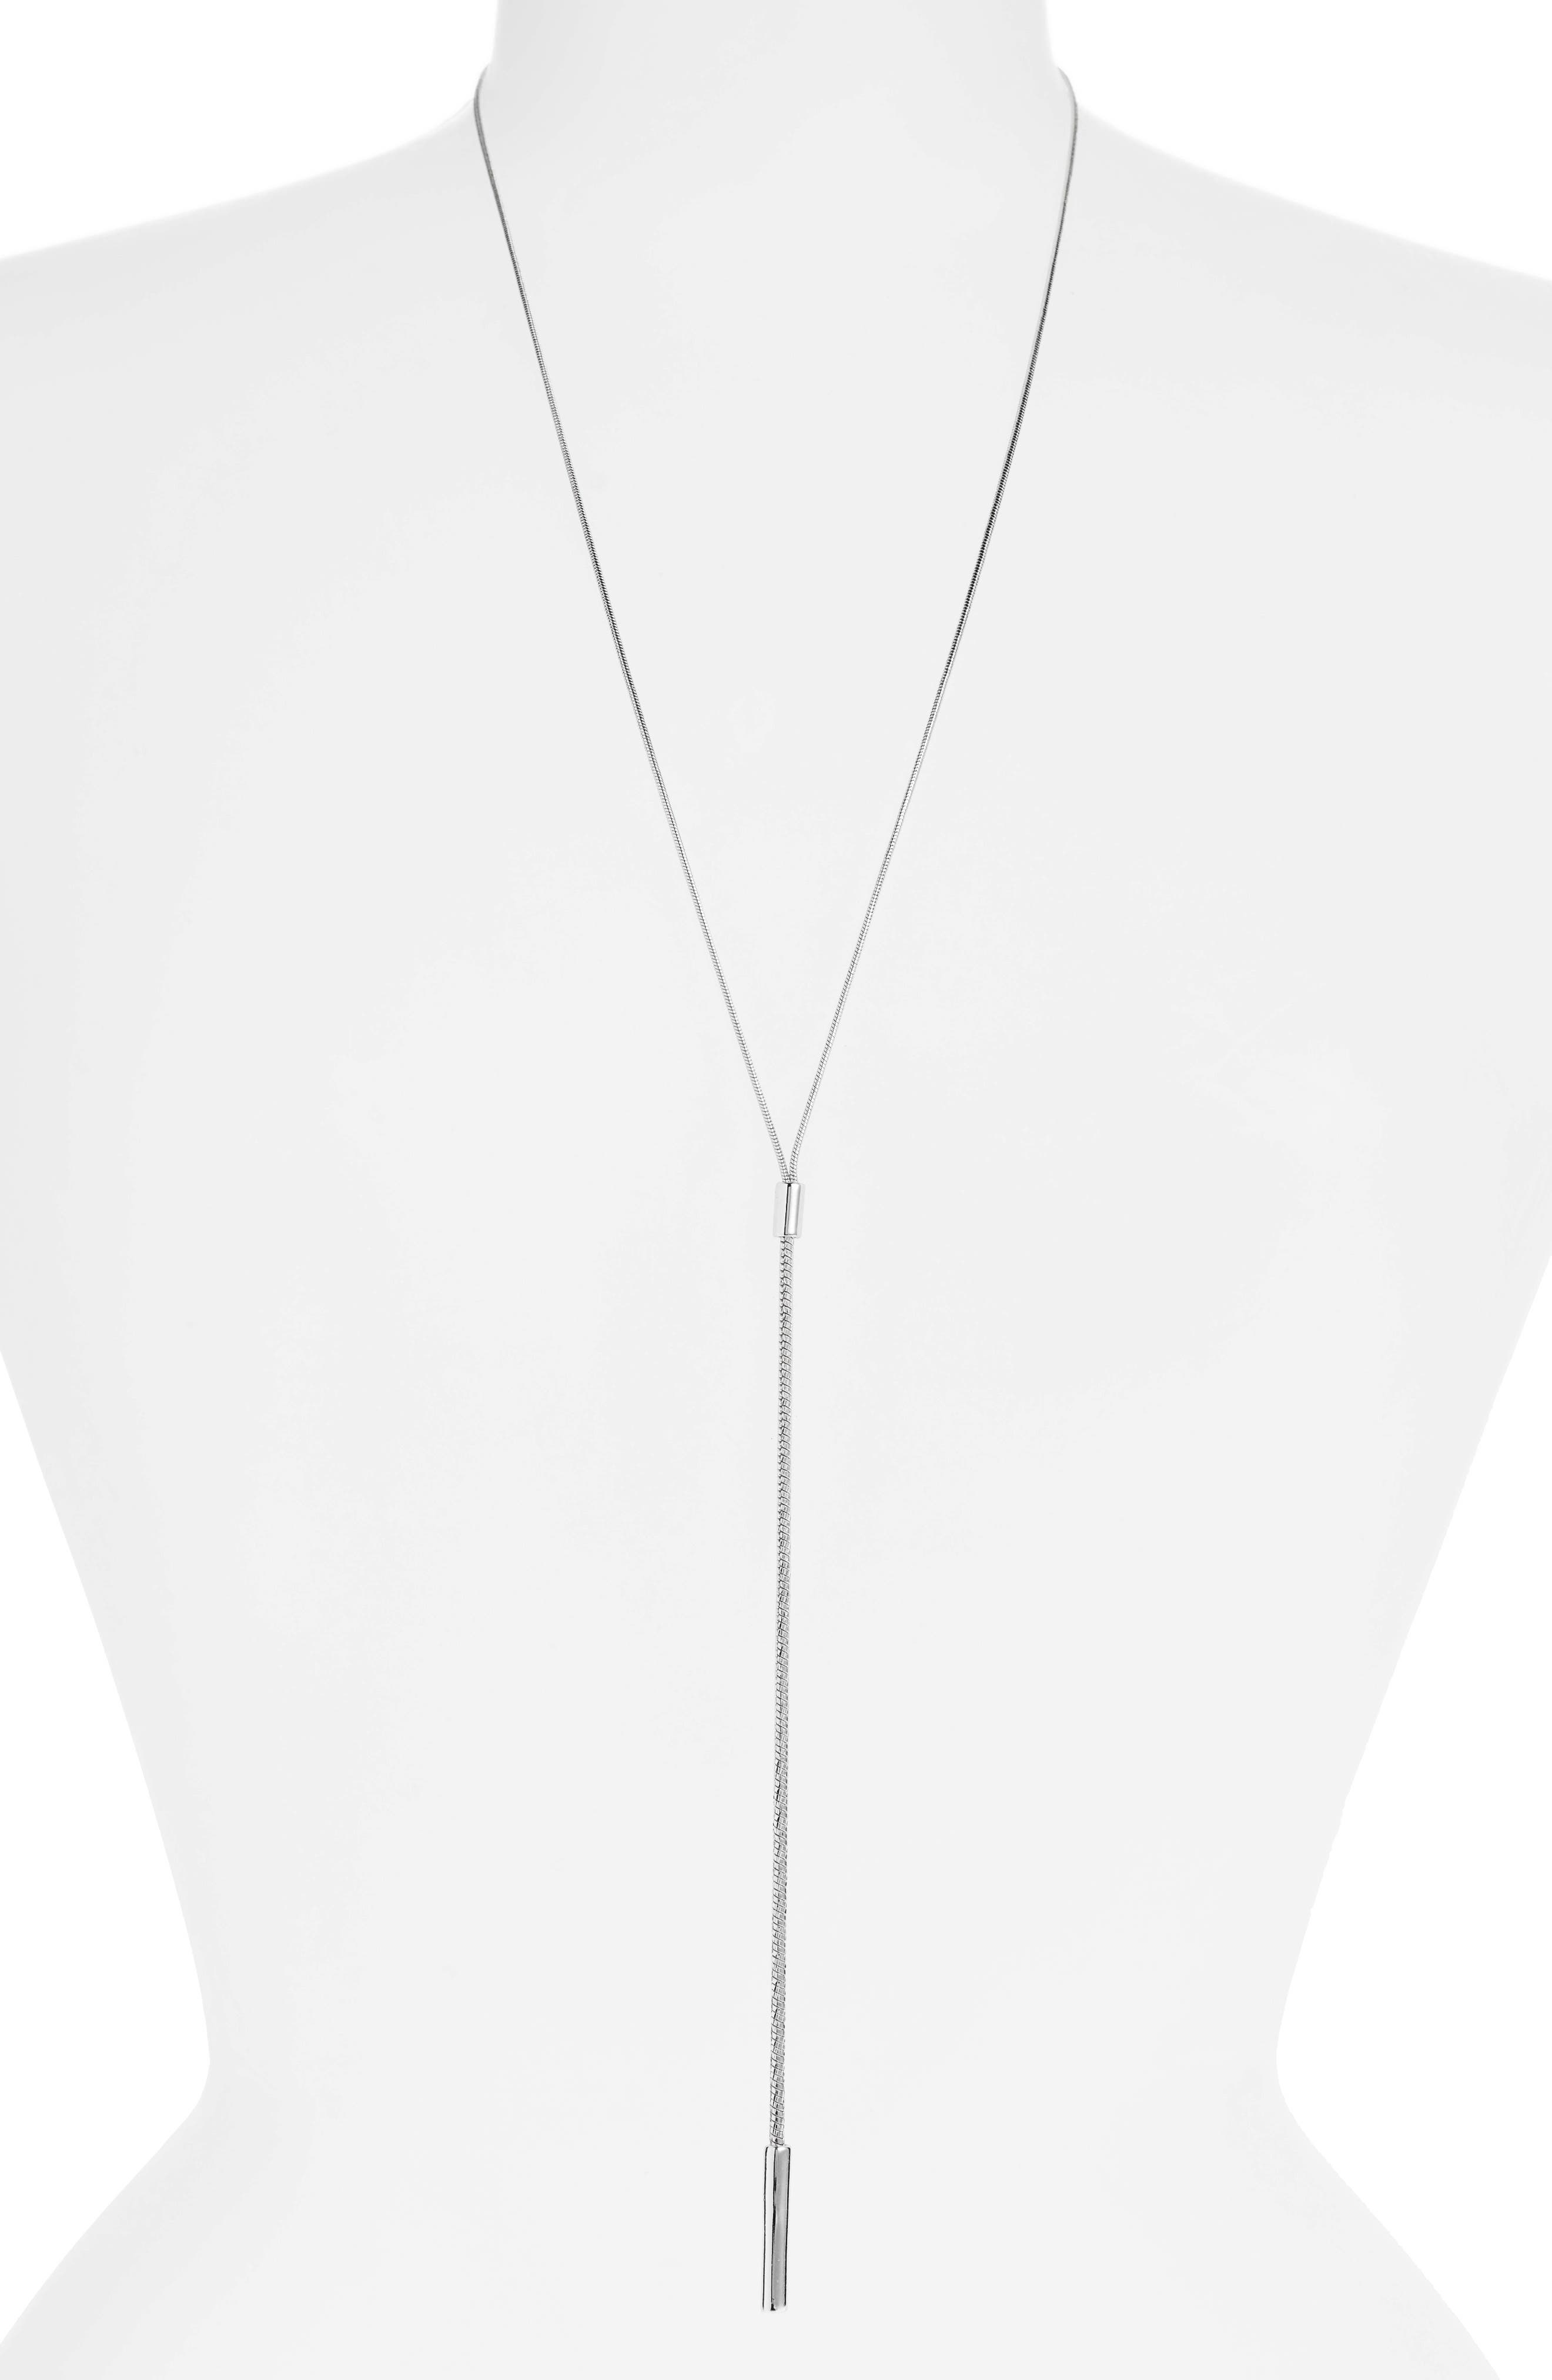 Faceted Snake Chain Y-Necklace,                             Main thumbnail 1, color,                             040